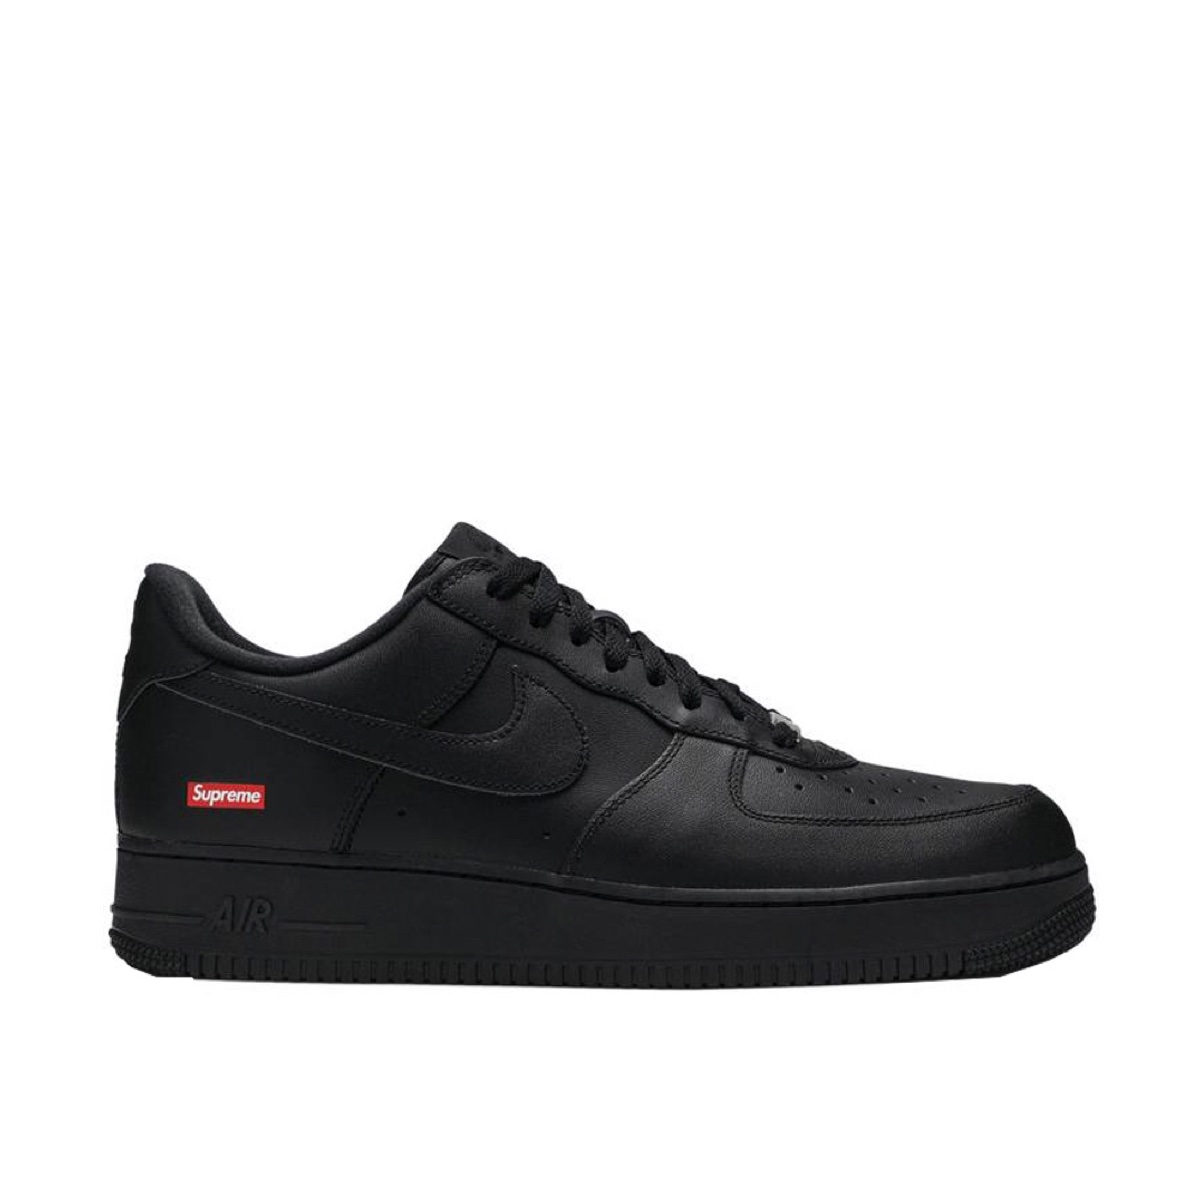 Supreme Nike Air Force One Black